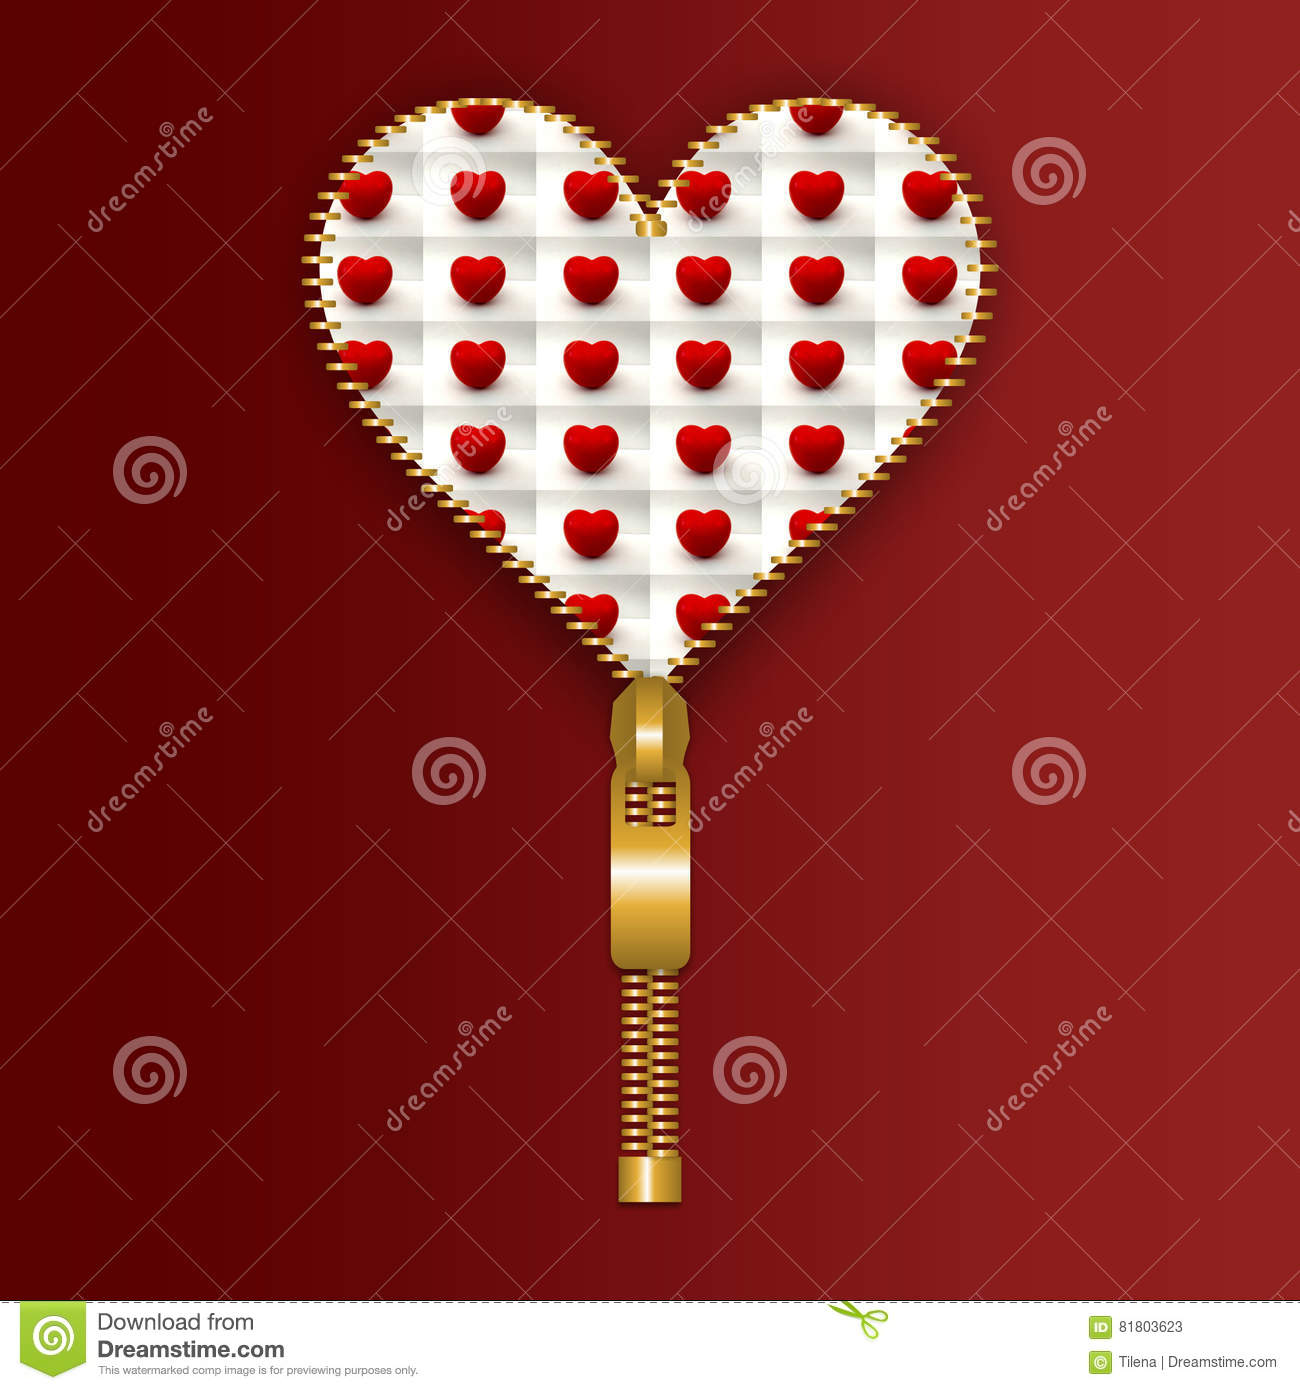 Heart With Small Tomato Hearts Inside Stock Illustration